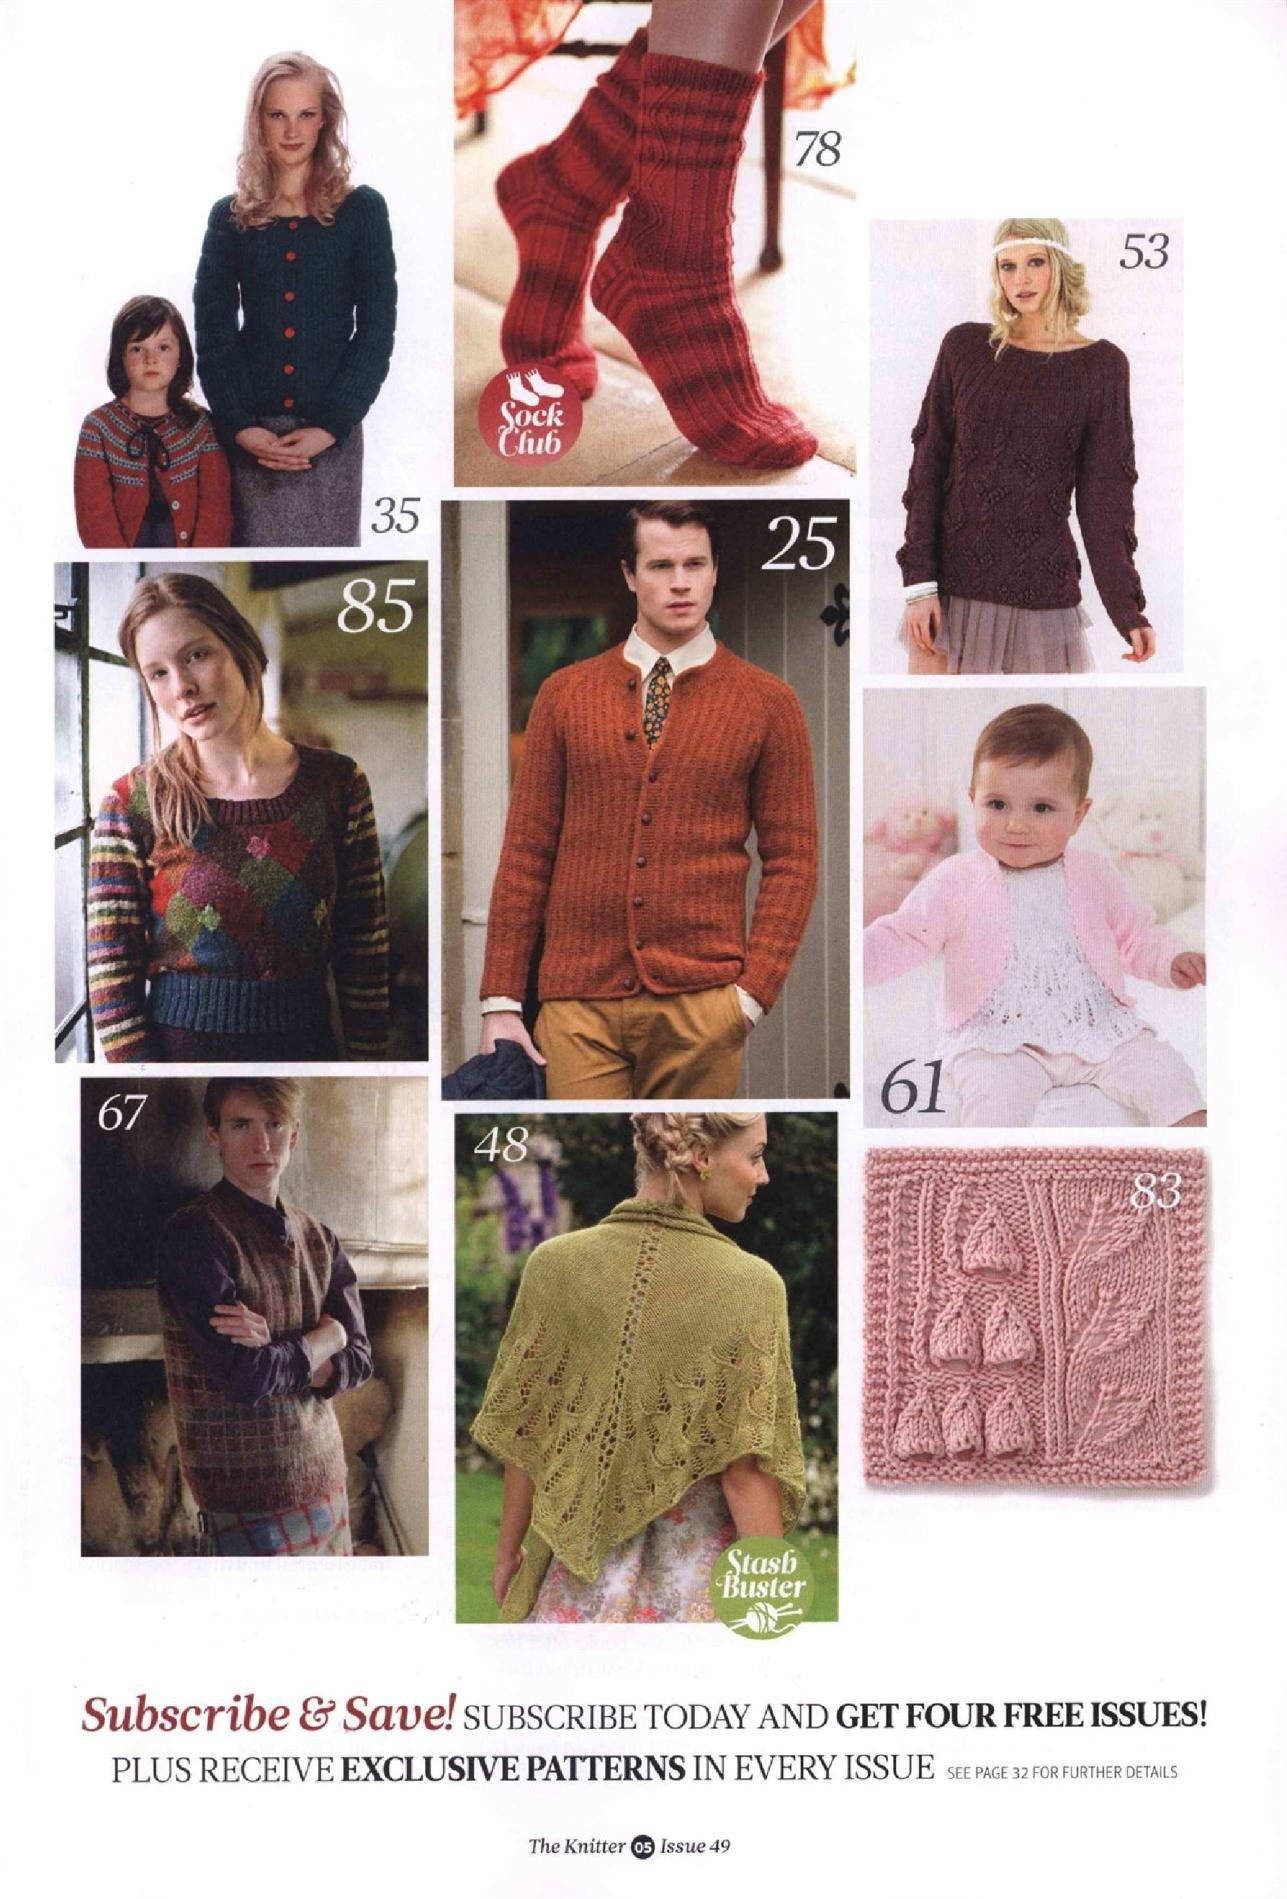 the-knitter-issue-49-2012(2).jpeg